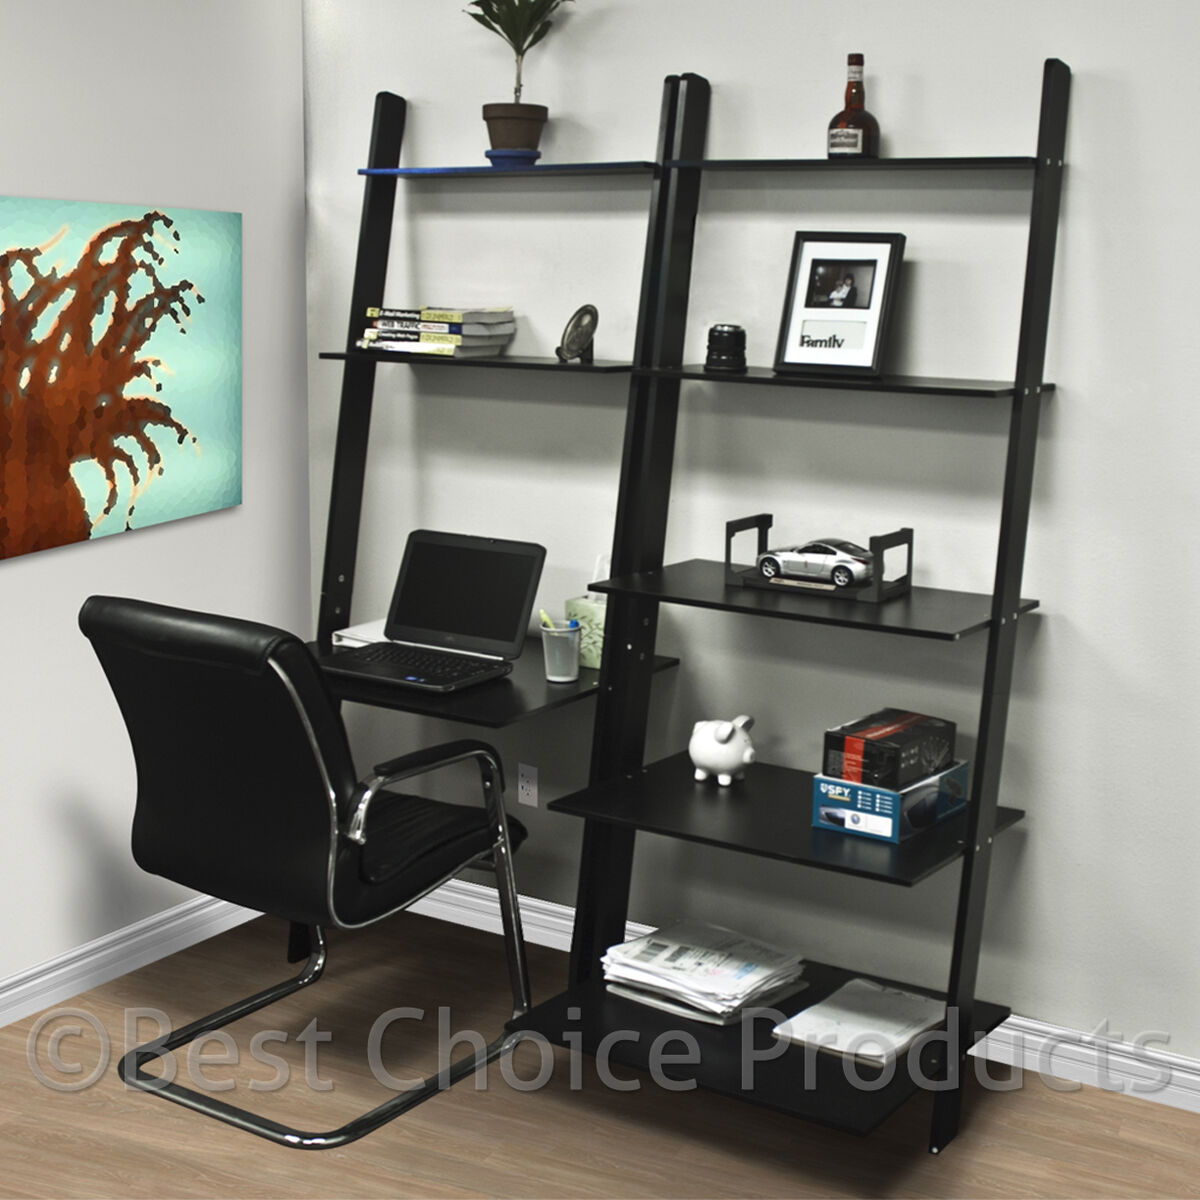 leaning shelf bookcase with computer desk office furniture. Black Bedroom Furniture Sets. Home Design Ideas